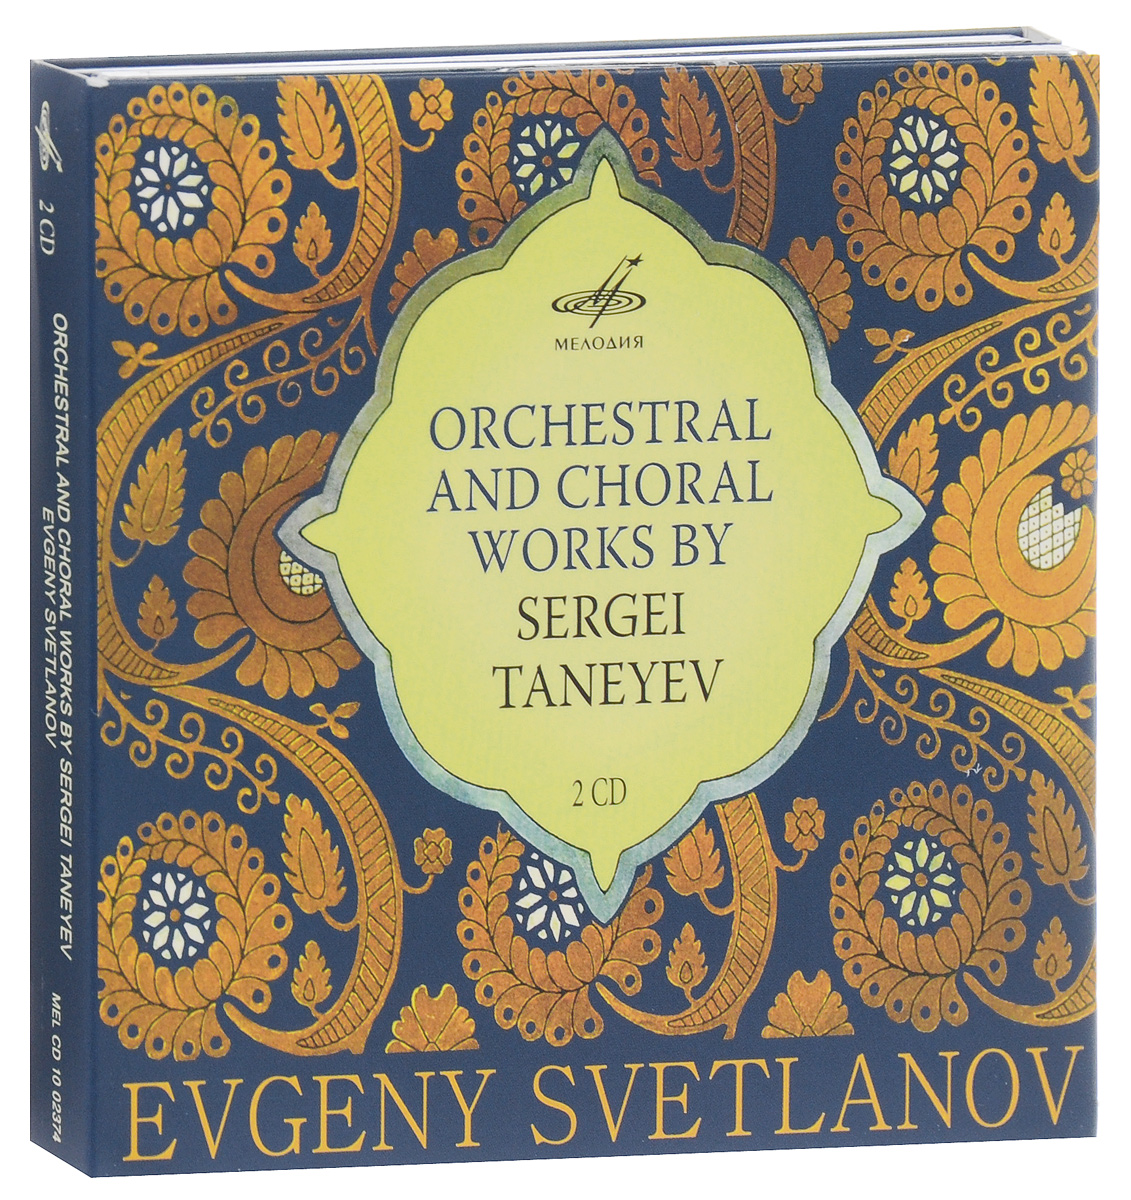 Евгений Светланов,The USSR State Academic Symphony Orchestra Evgeny Svetlanov. Sergei Taneyev. Orchestral And Choral Works (2 CD) choral all state policies and practices